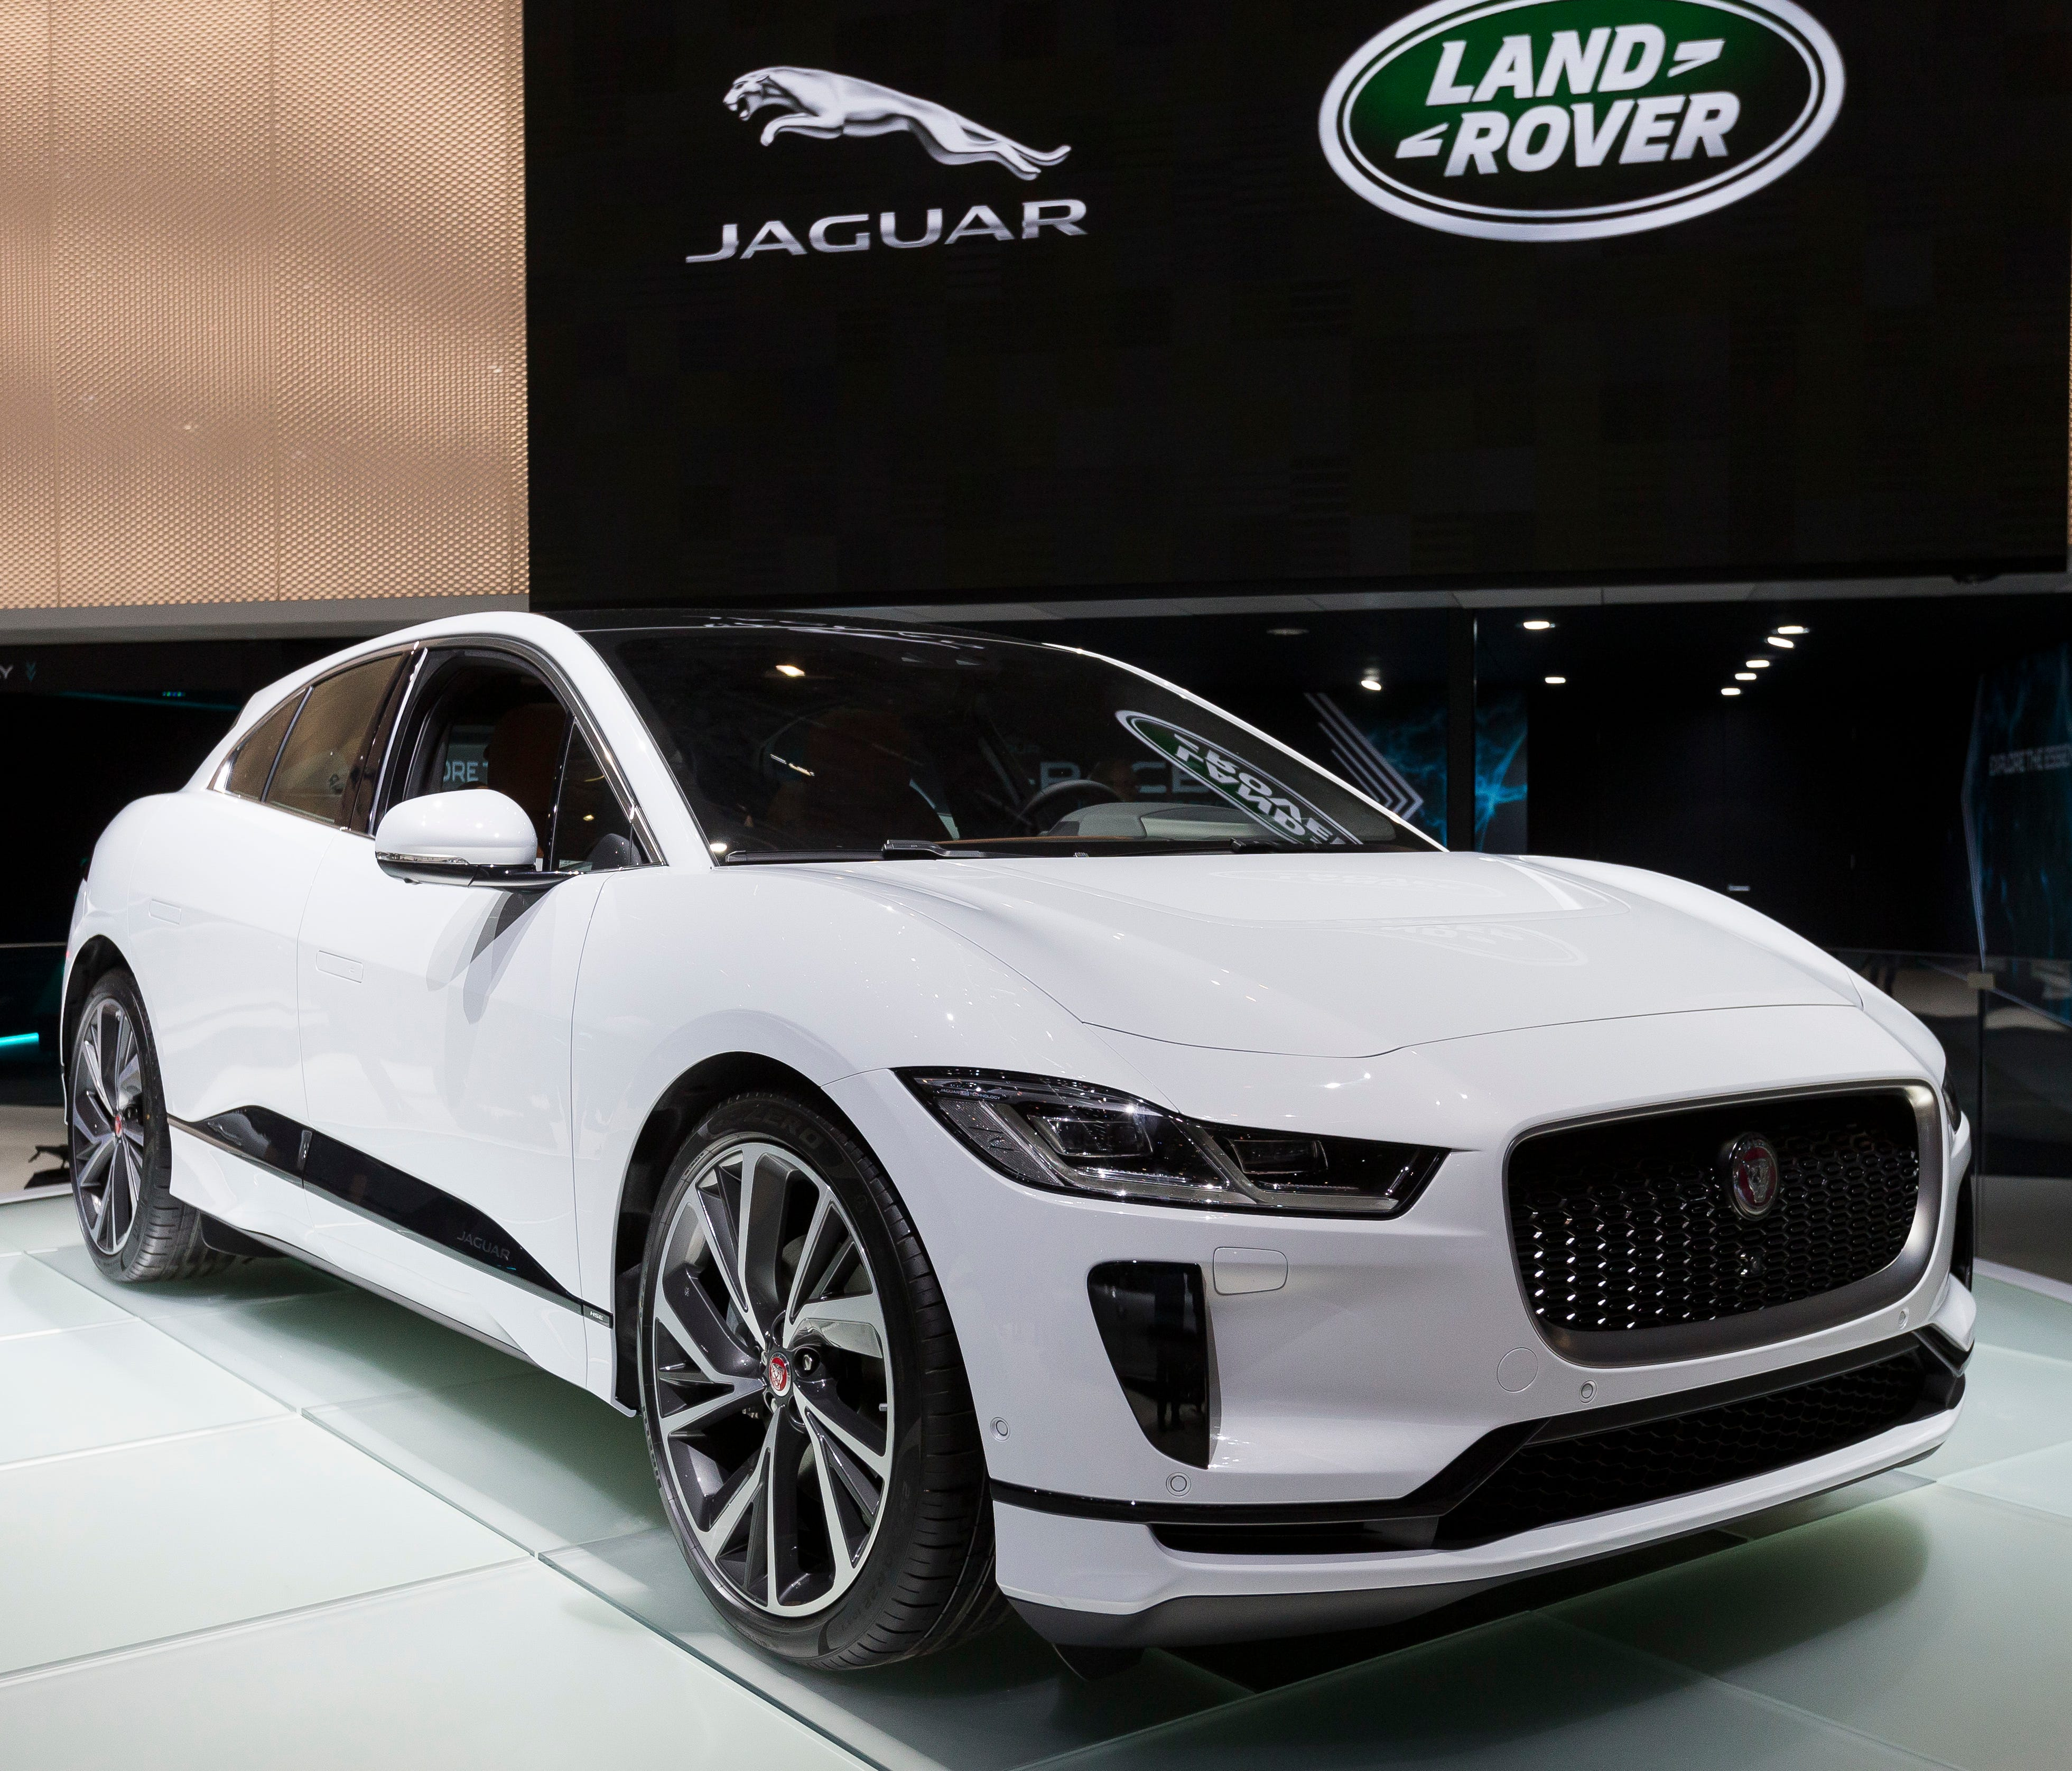 The New Jaguar I-PACE is presented during the press day at the 88th Geneva International Motor Show in Geneva, Switzerland. The 2019 Jaguar I-Pace is an all-electric SUV meant to compete with the Tesla Model X.